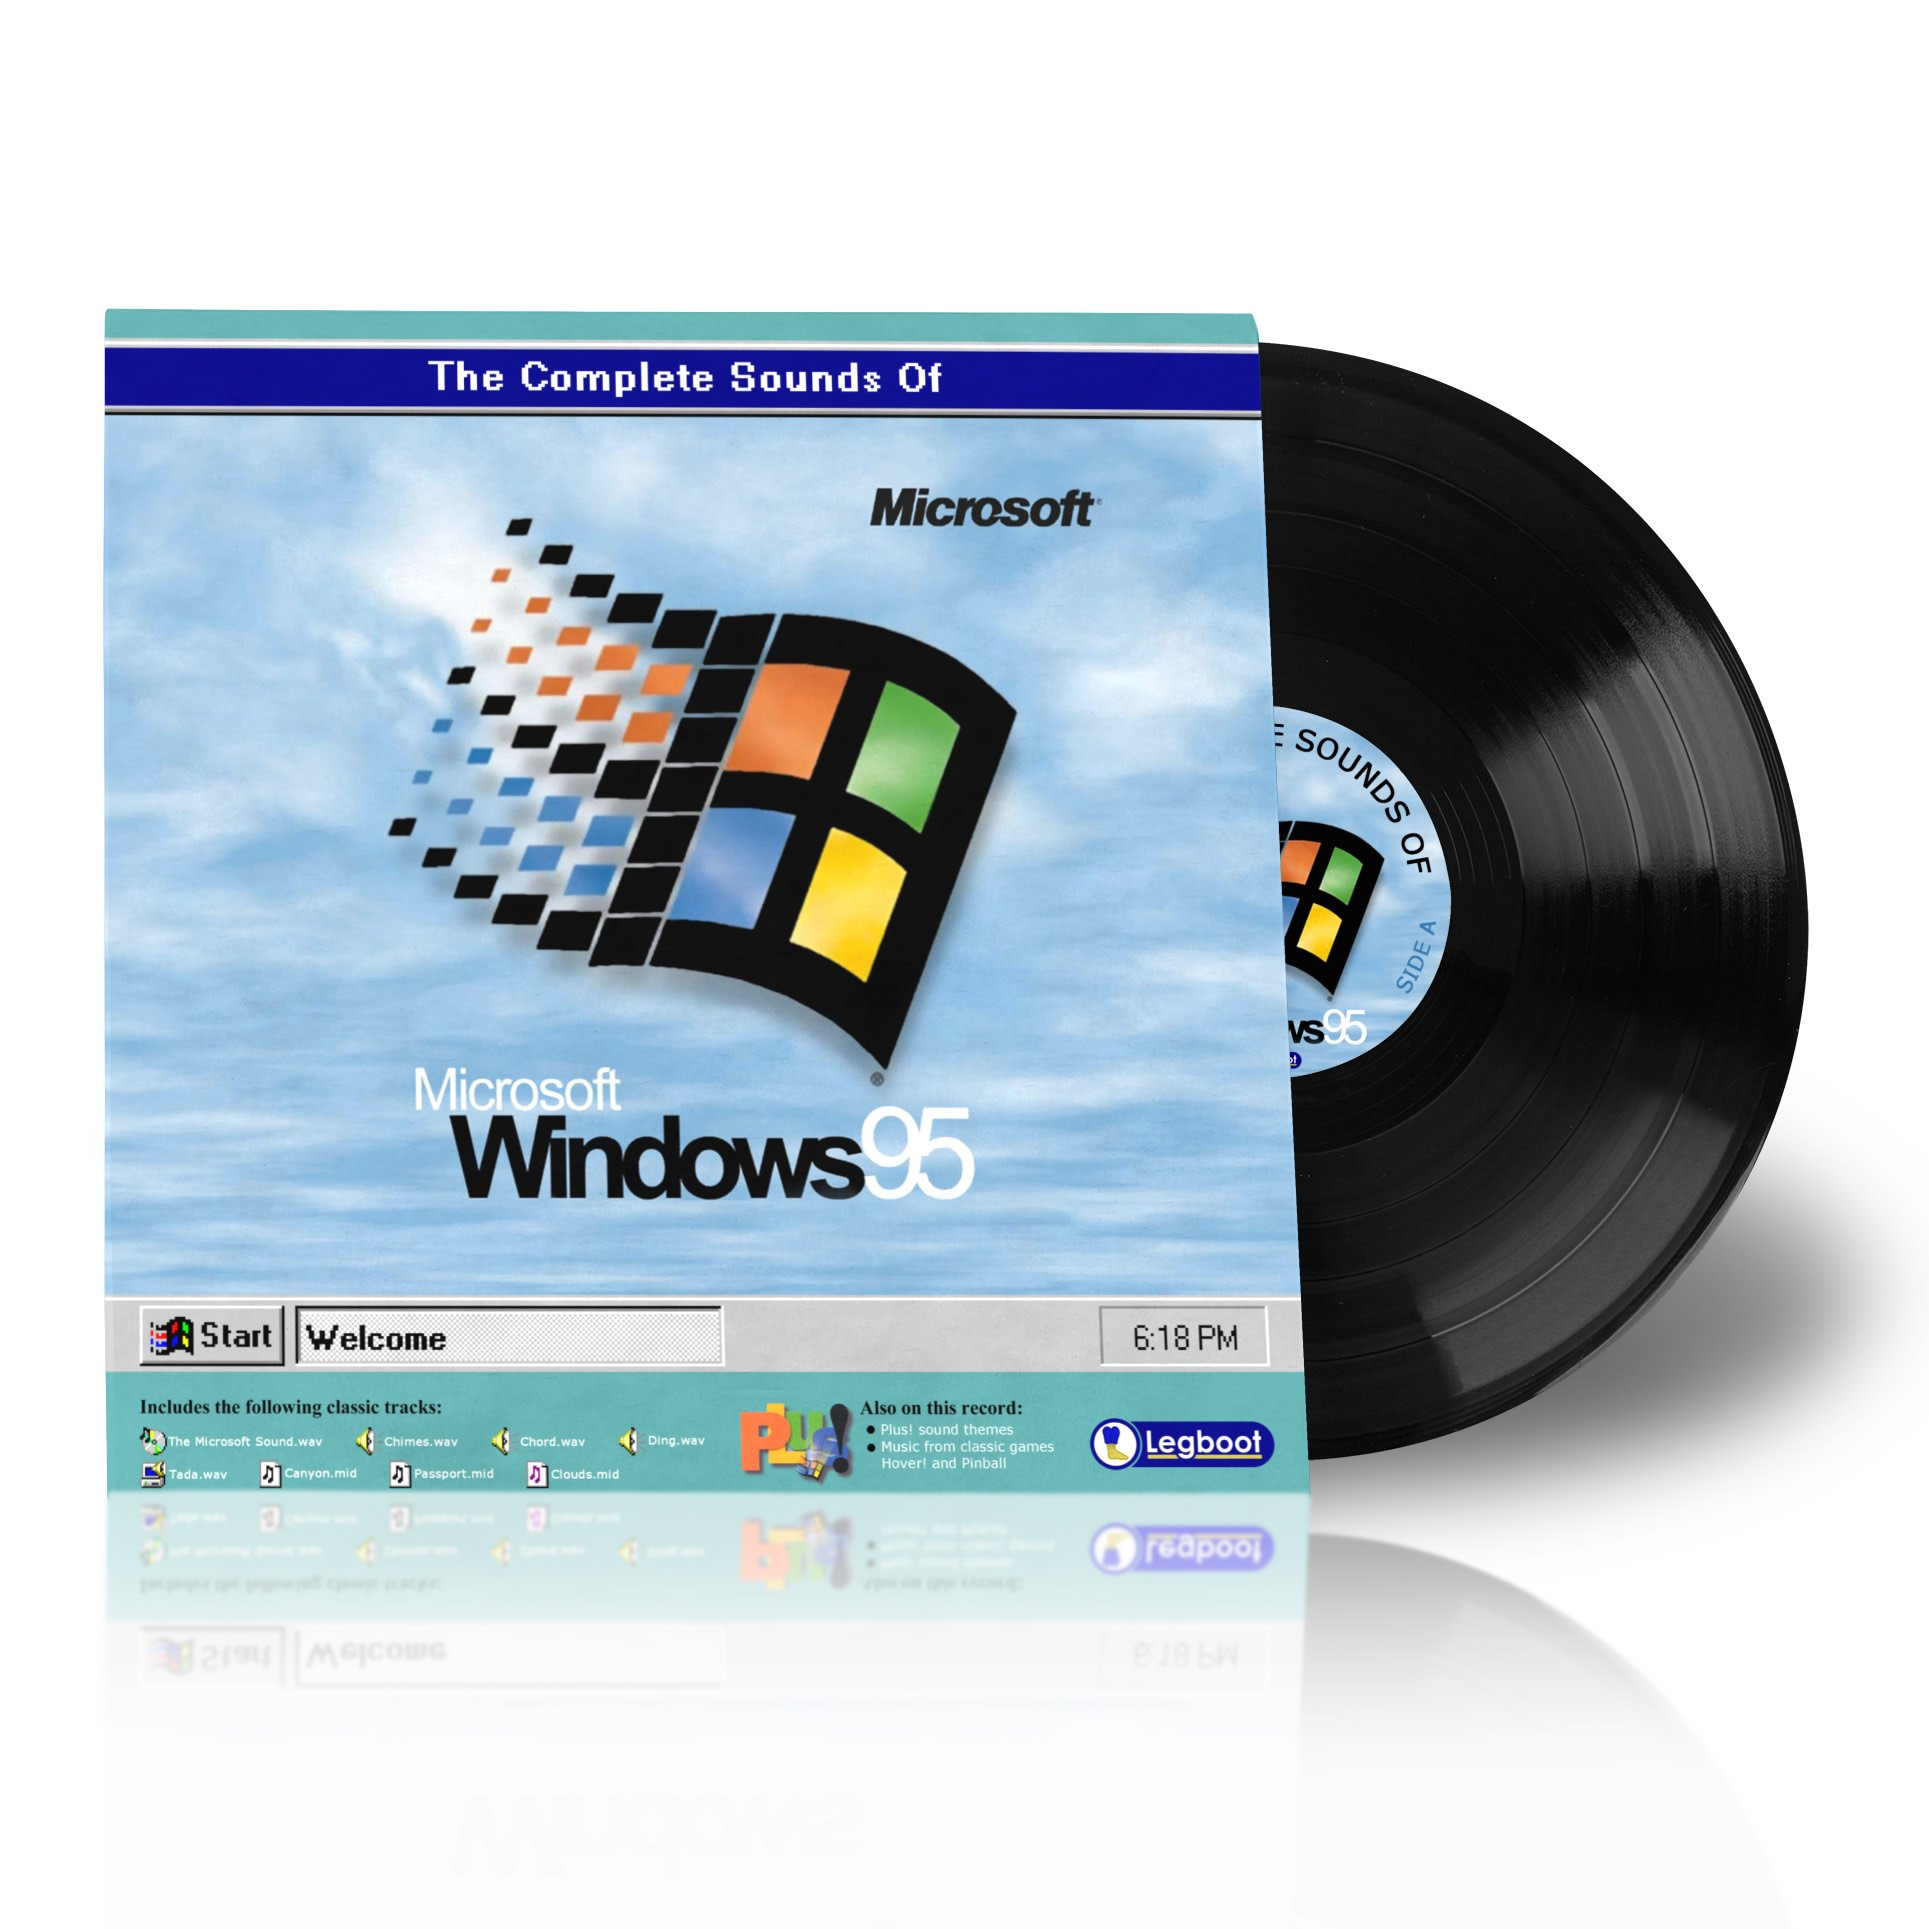 The Complete Sounds of Windows 95 Vinyl Record